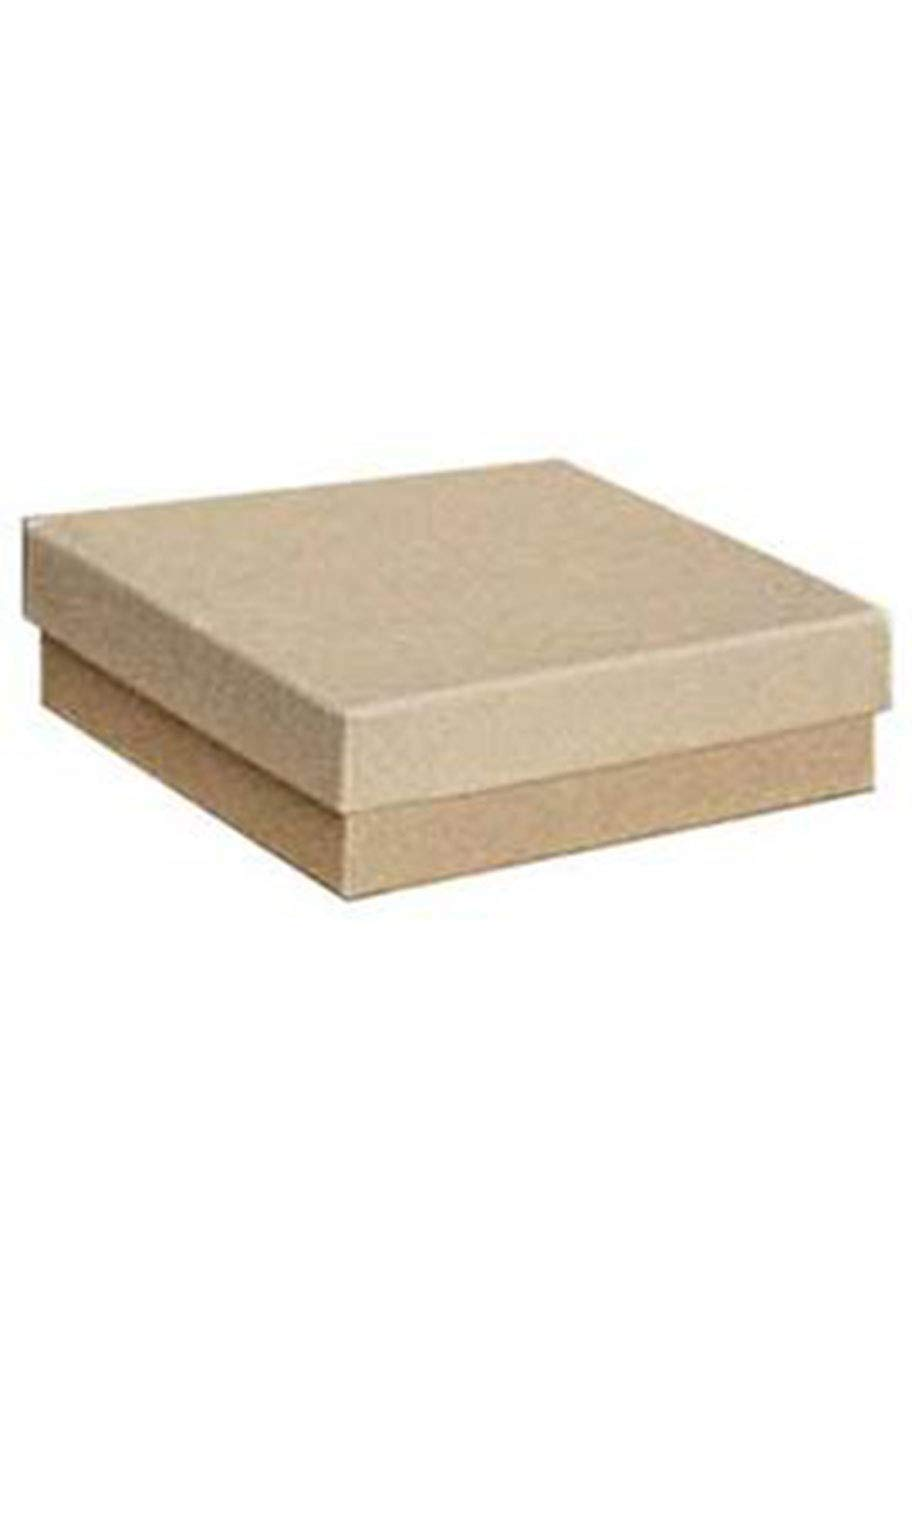 Cotton Filled Kraft Jewelry Boxes - 3½'' x 3½'' x 1'' - Case of 100